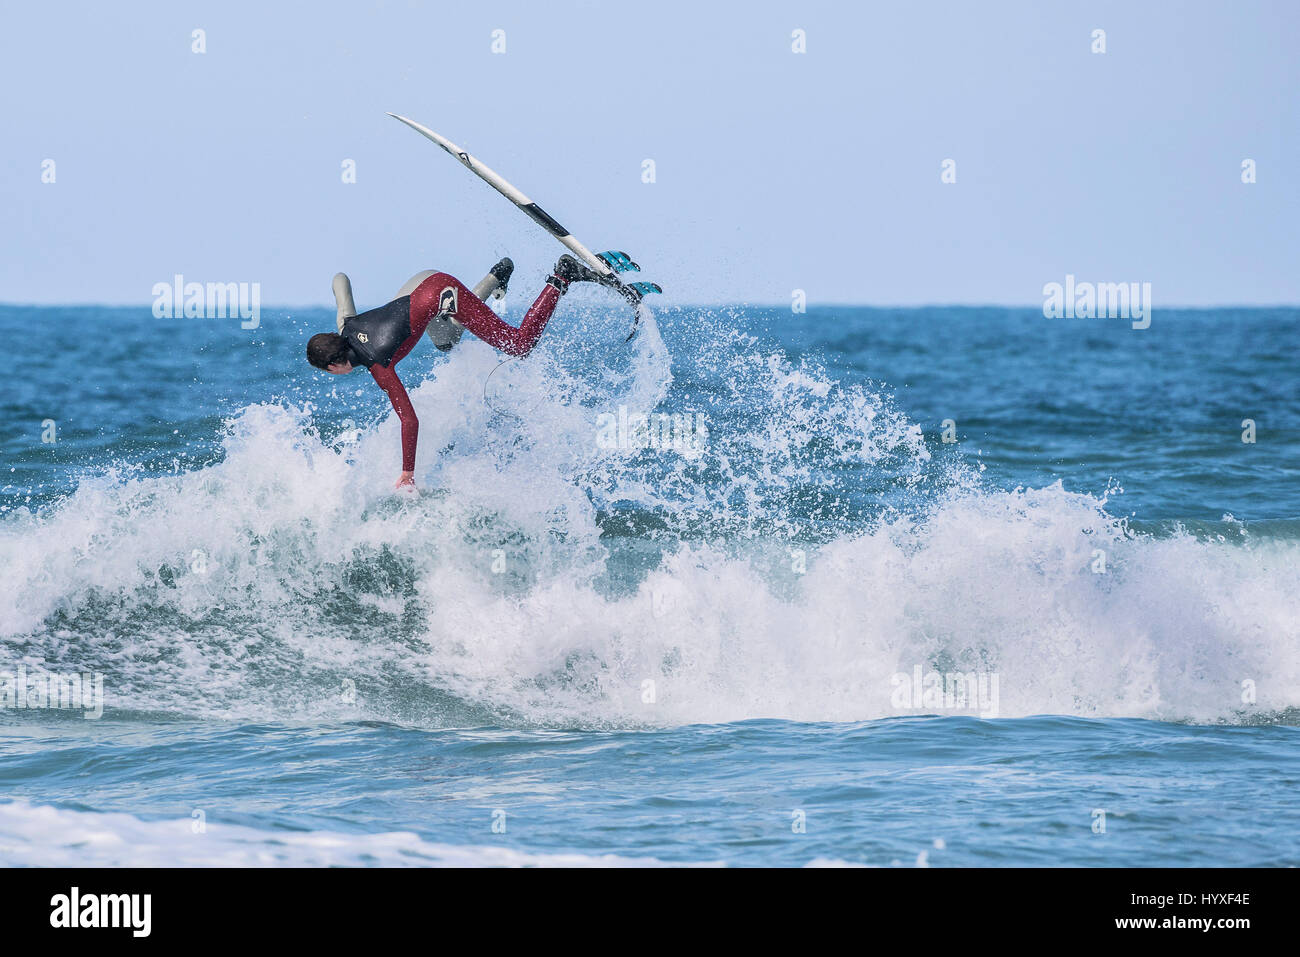 UK Surfing Surfer Physical activity Watersport Skill Spectacular action Leisure activity Lifestyle Recreation Hobby - Stock Image